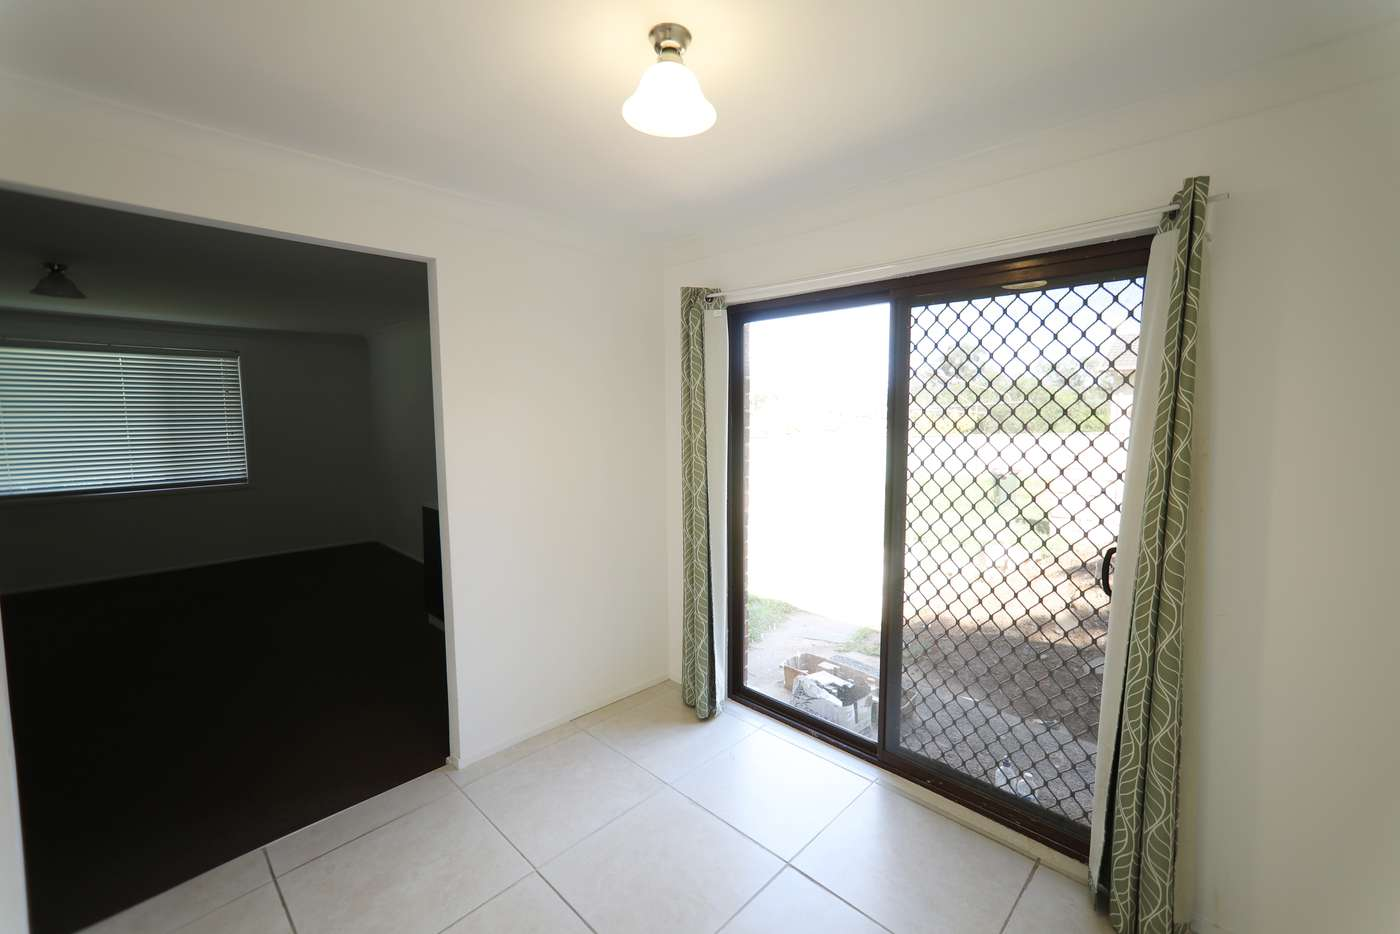 Sixth view of Homely house listing, 31 Argyle Street, Picton NSW 2571